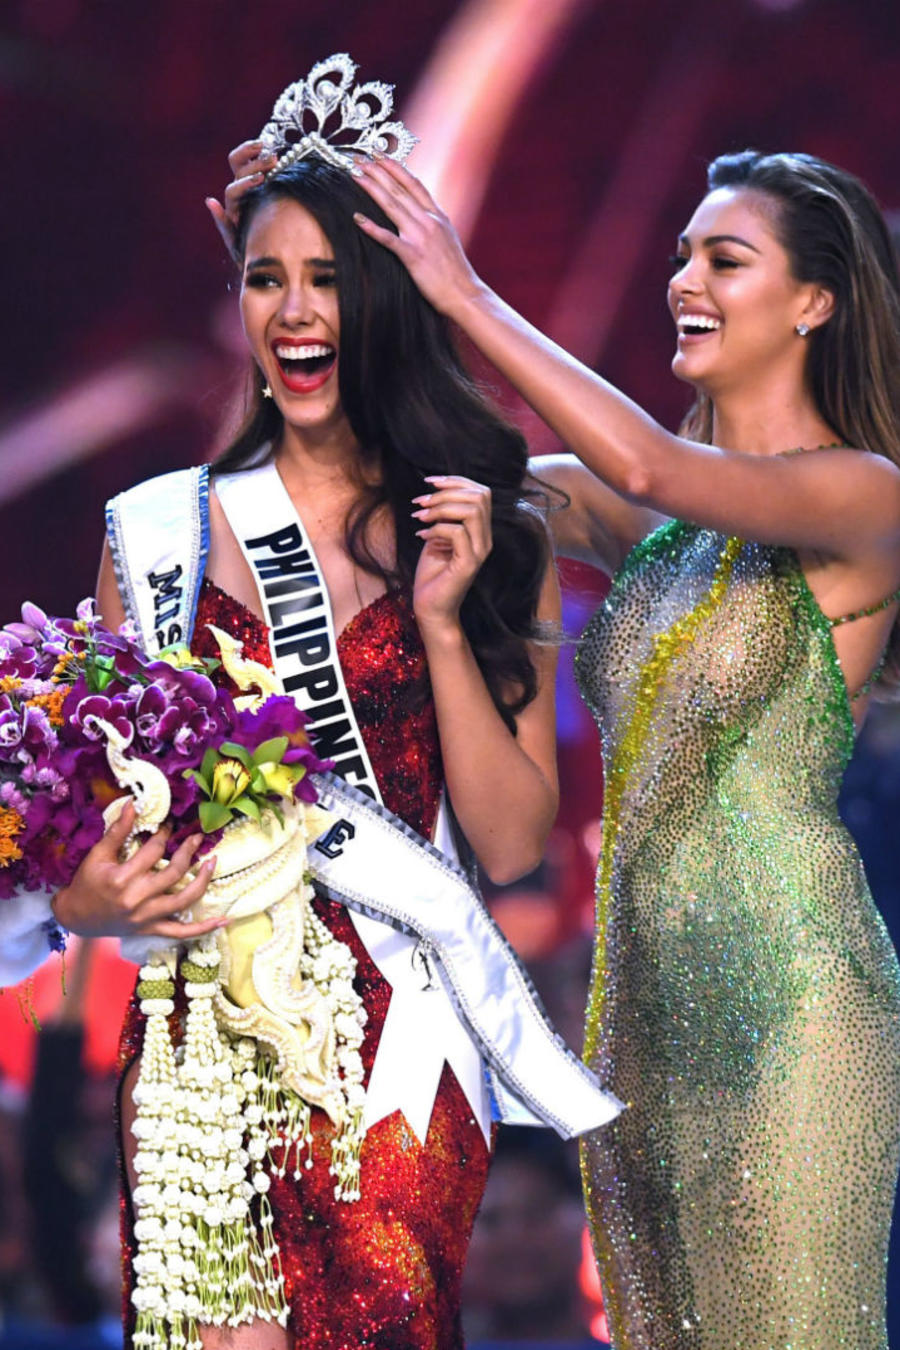 Miss Universo Catriona Gray